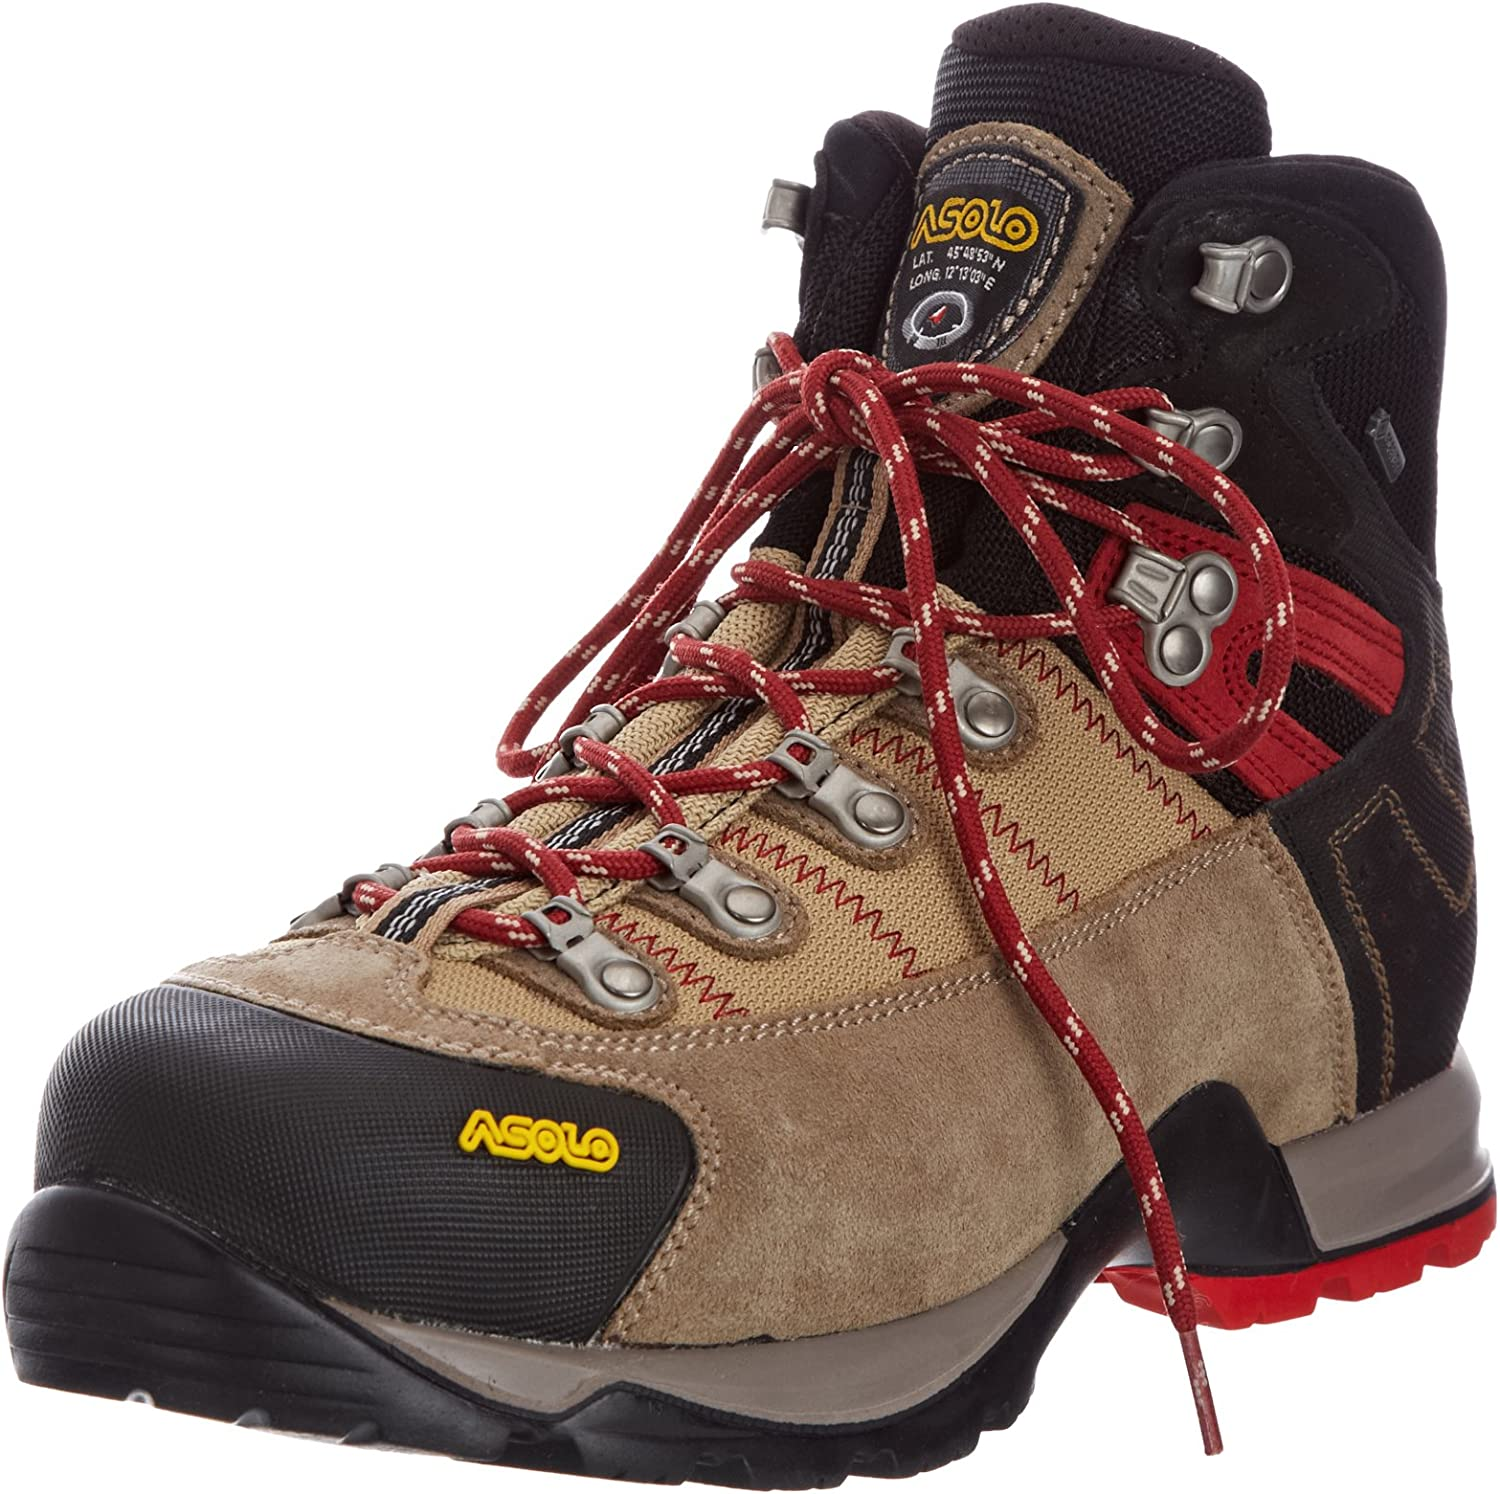 Asolo Men's Fugitive Hiking Inventory cleanup selling sale Boot Beauty products GTX